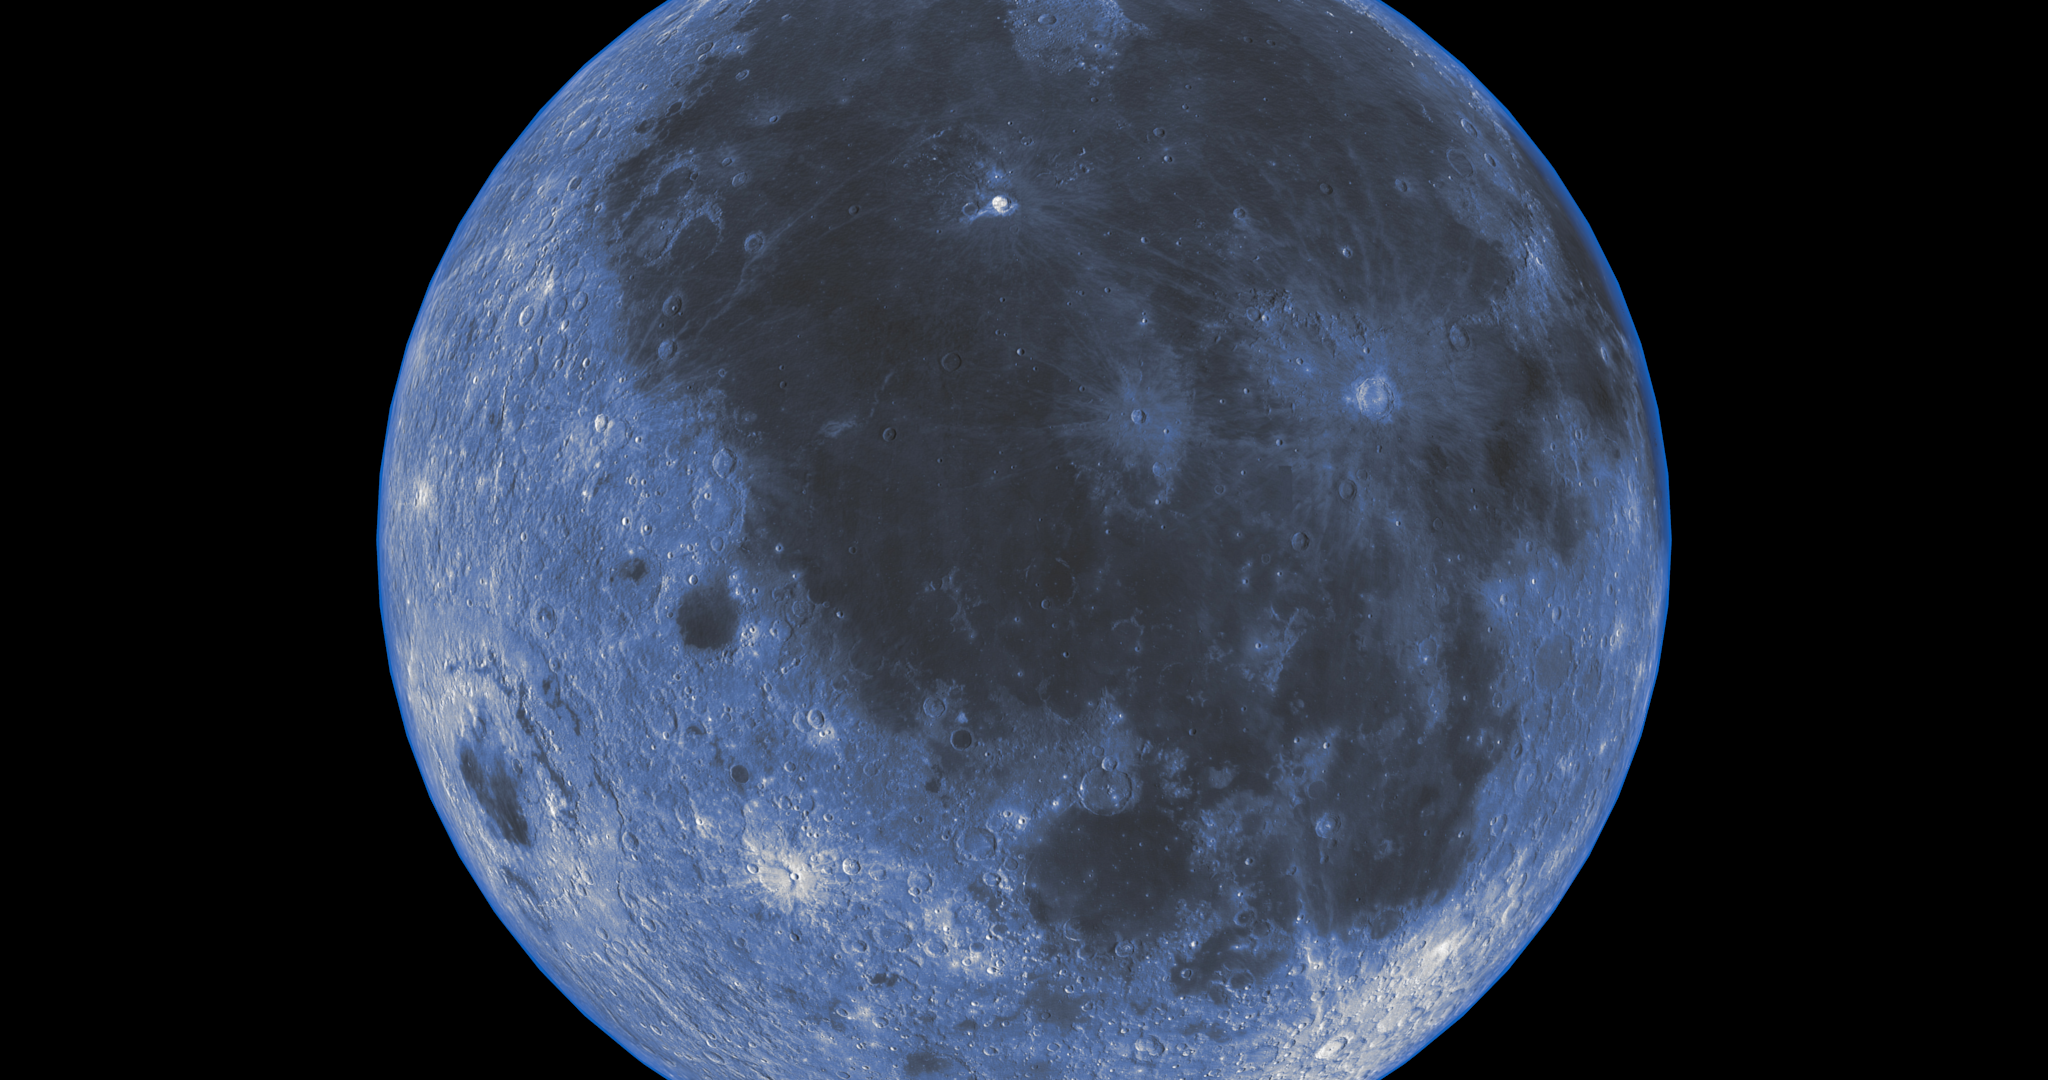 Moon 11k 3d model 3ds fbx blend dae jpeg obj 211858